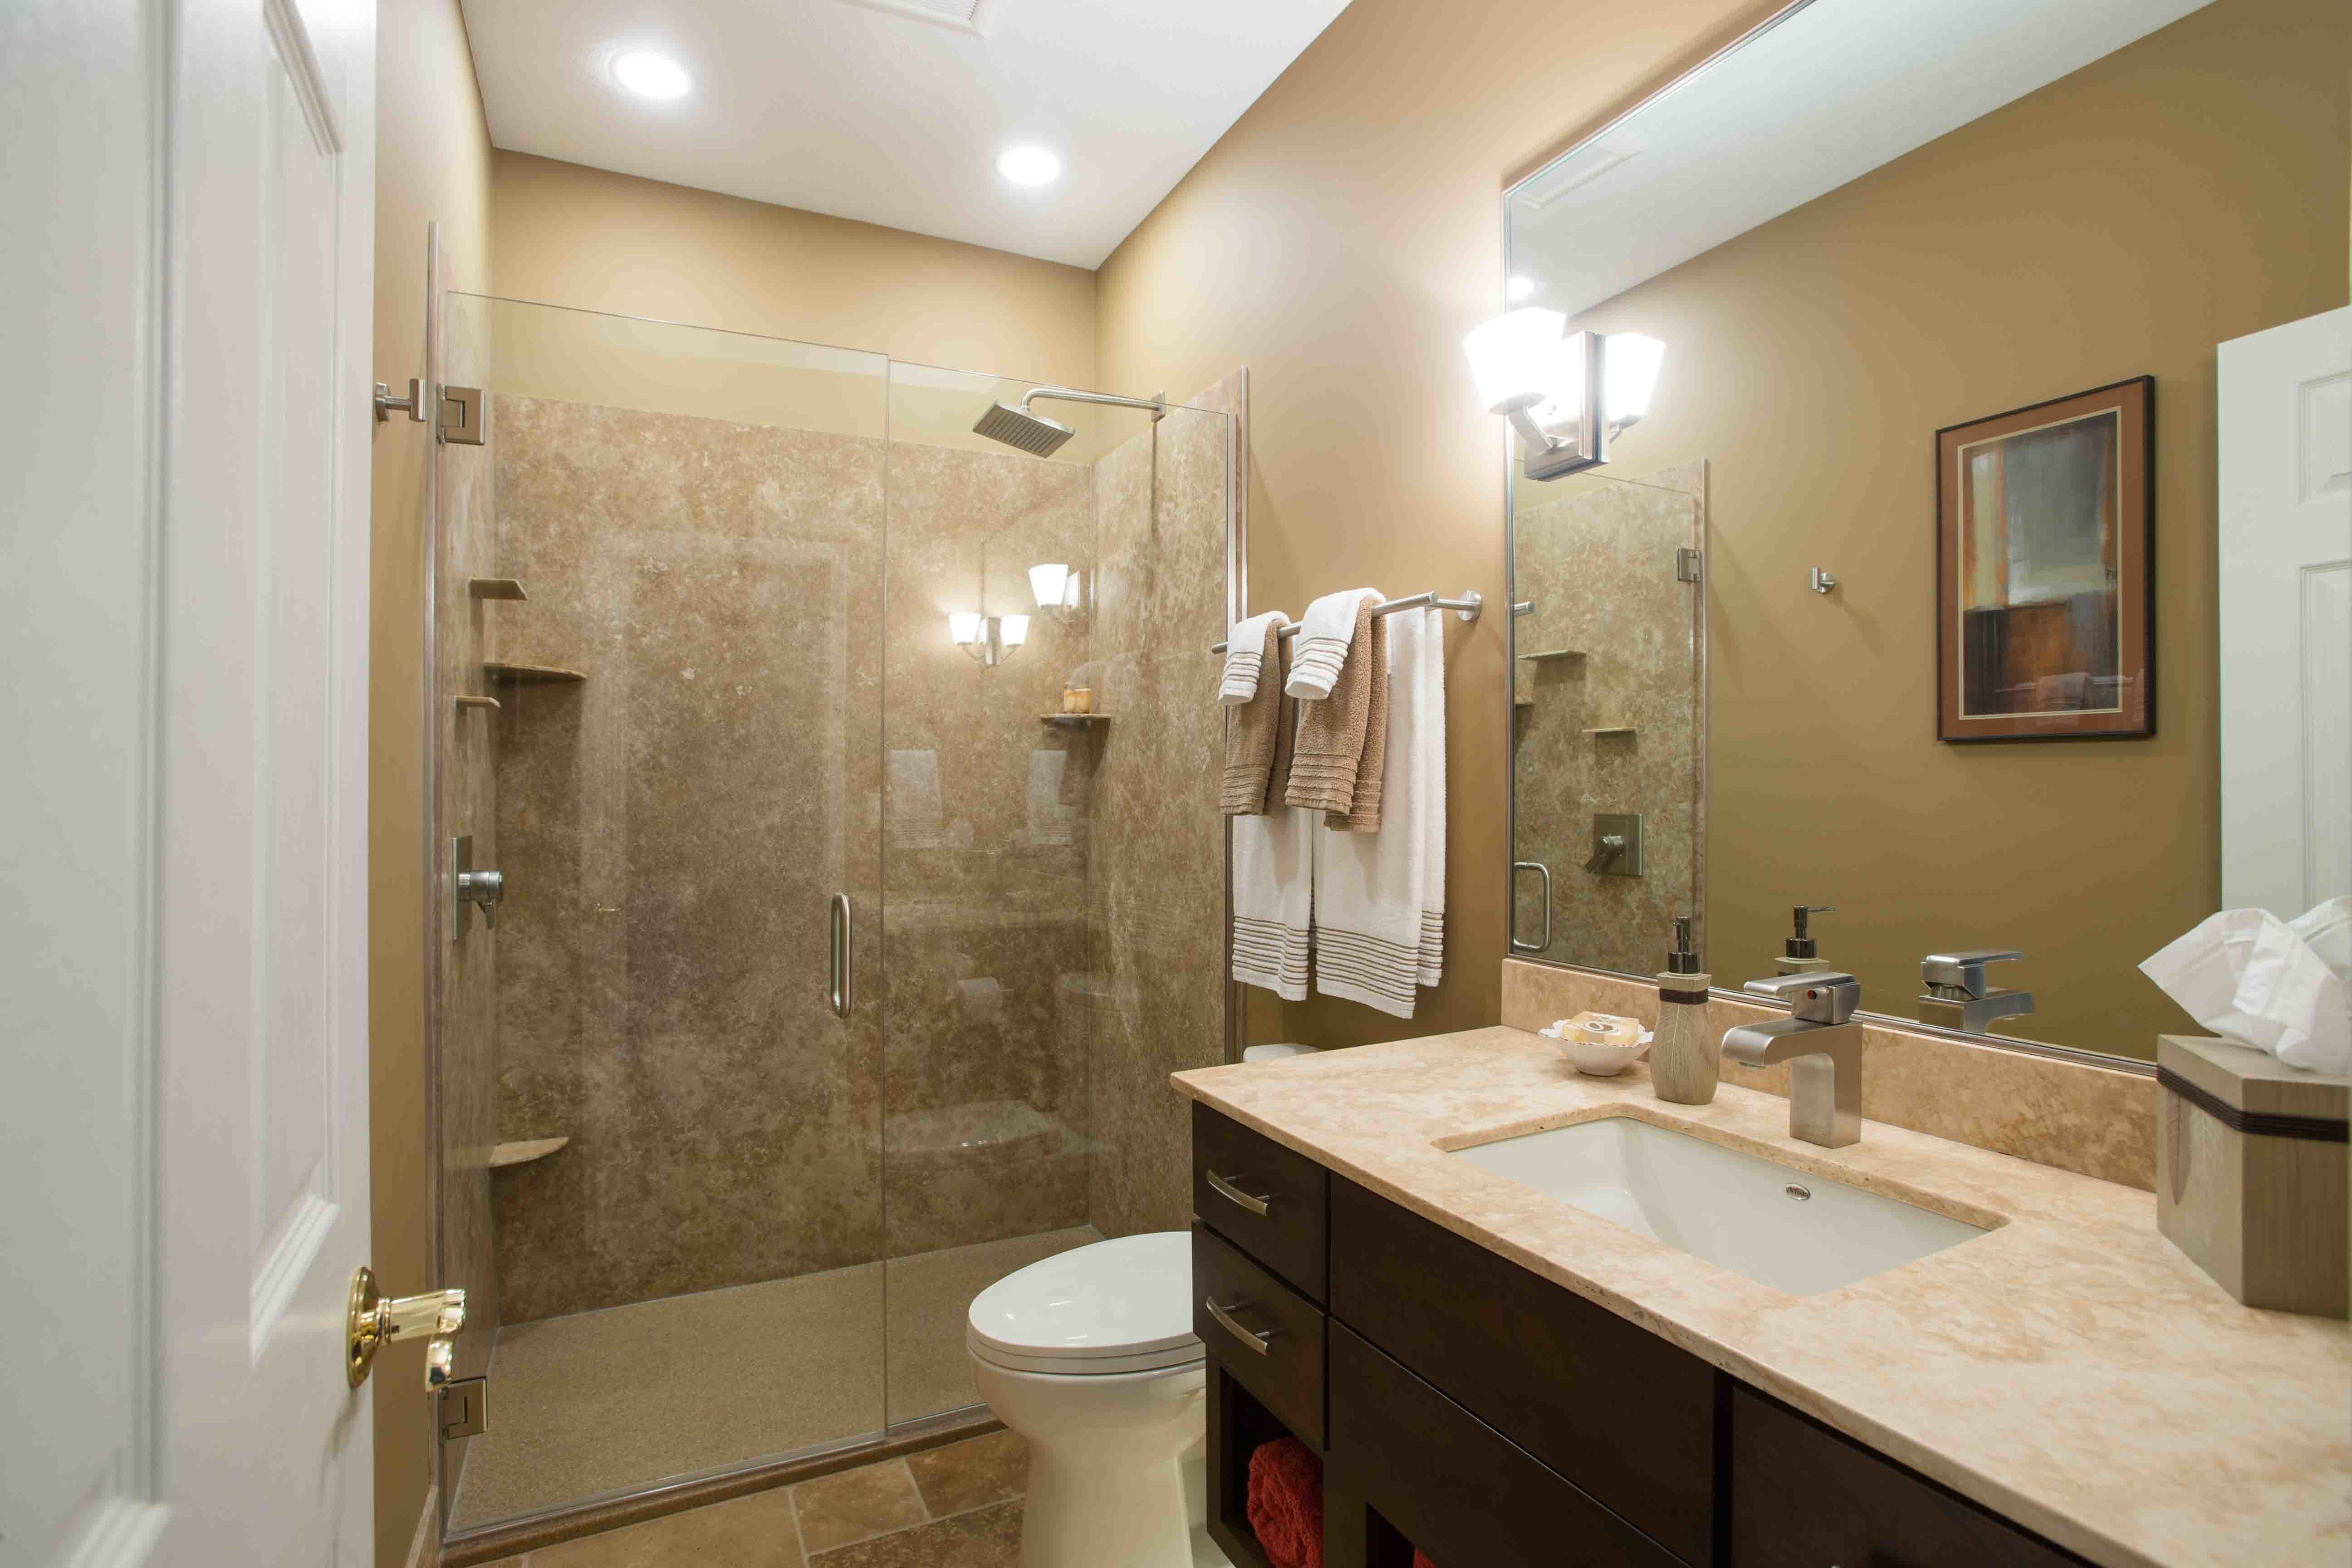 The Rejuvenated 5 X 9 Bathroom With Images Bathrooms Remodel